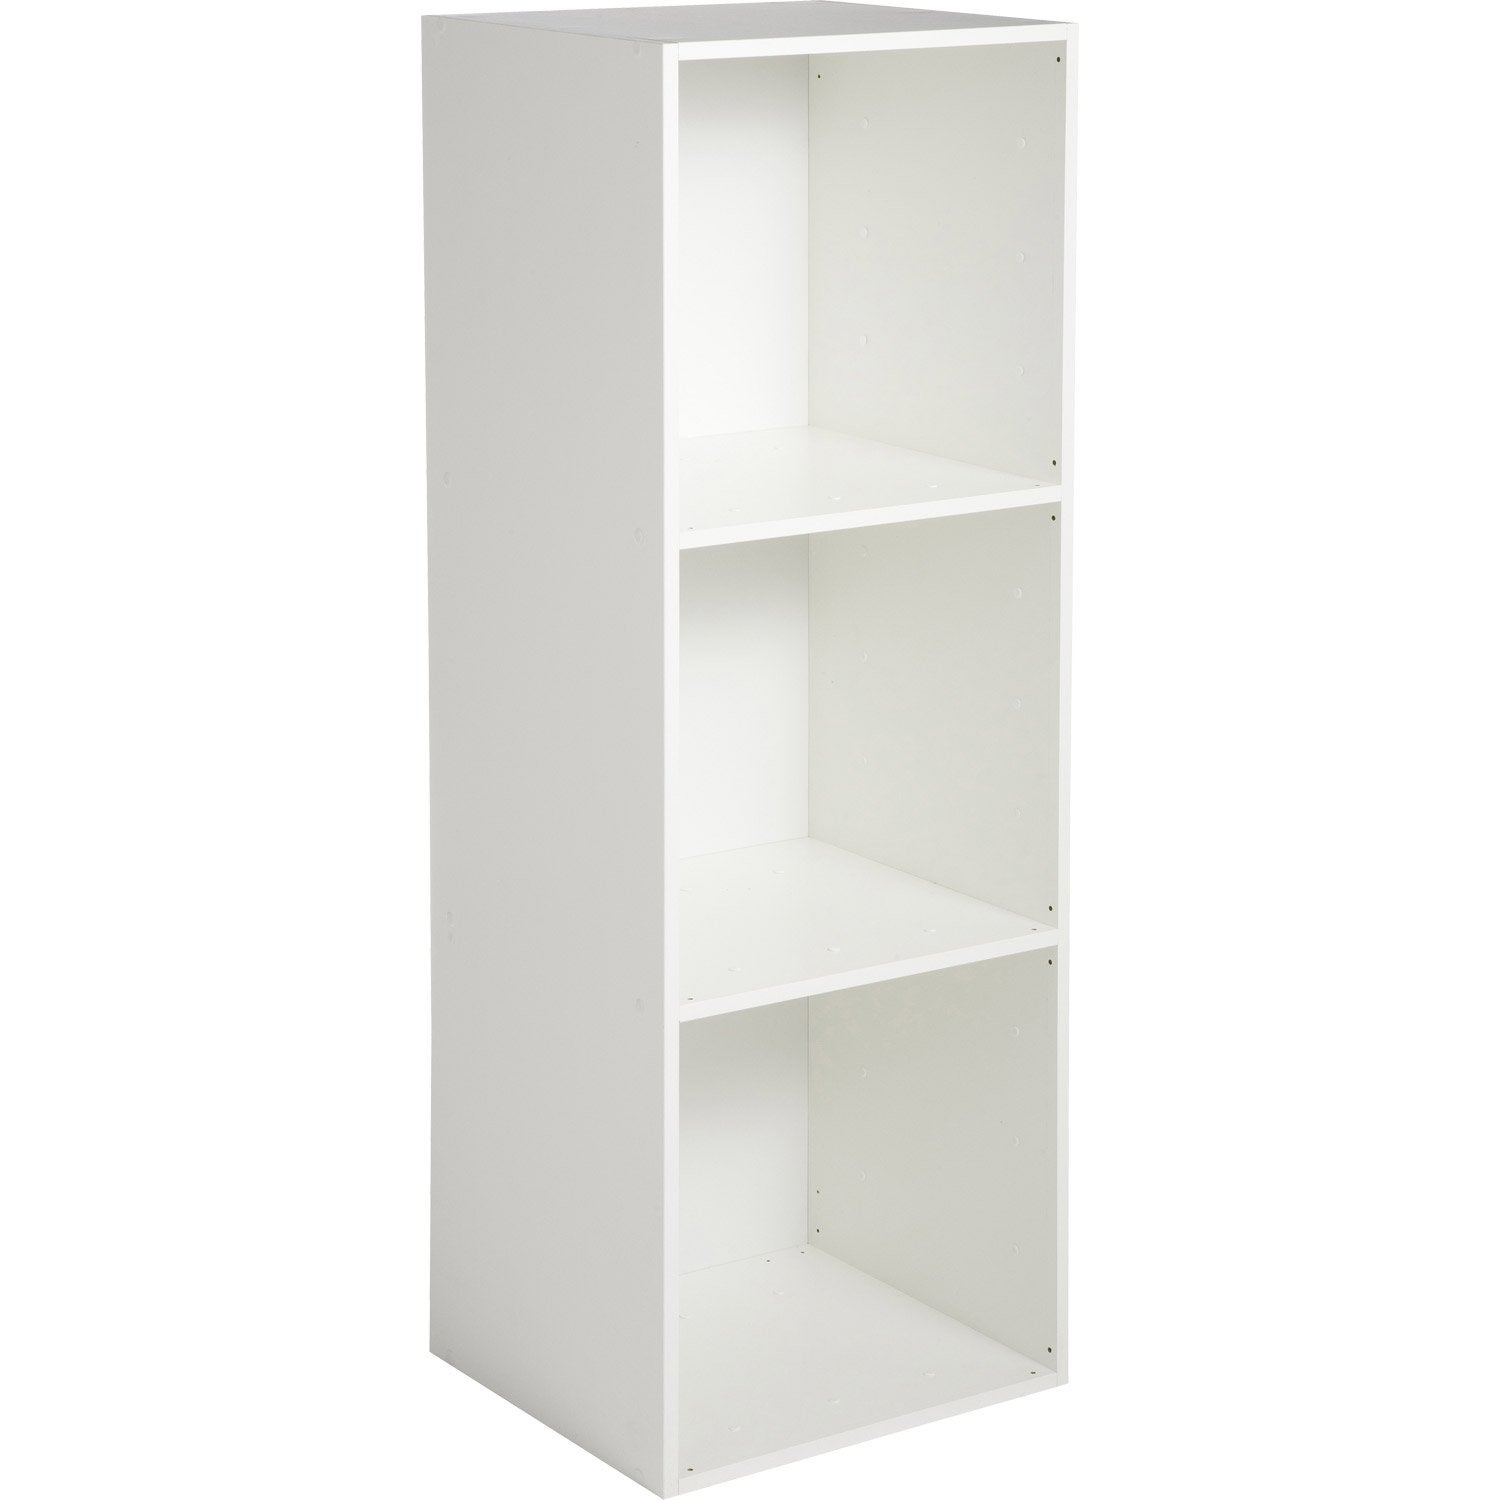 Etag re 3 cases multikaz blanc x x - Etagere chaussure leroy merlin ...